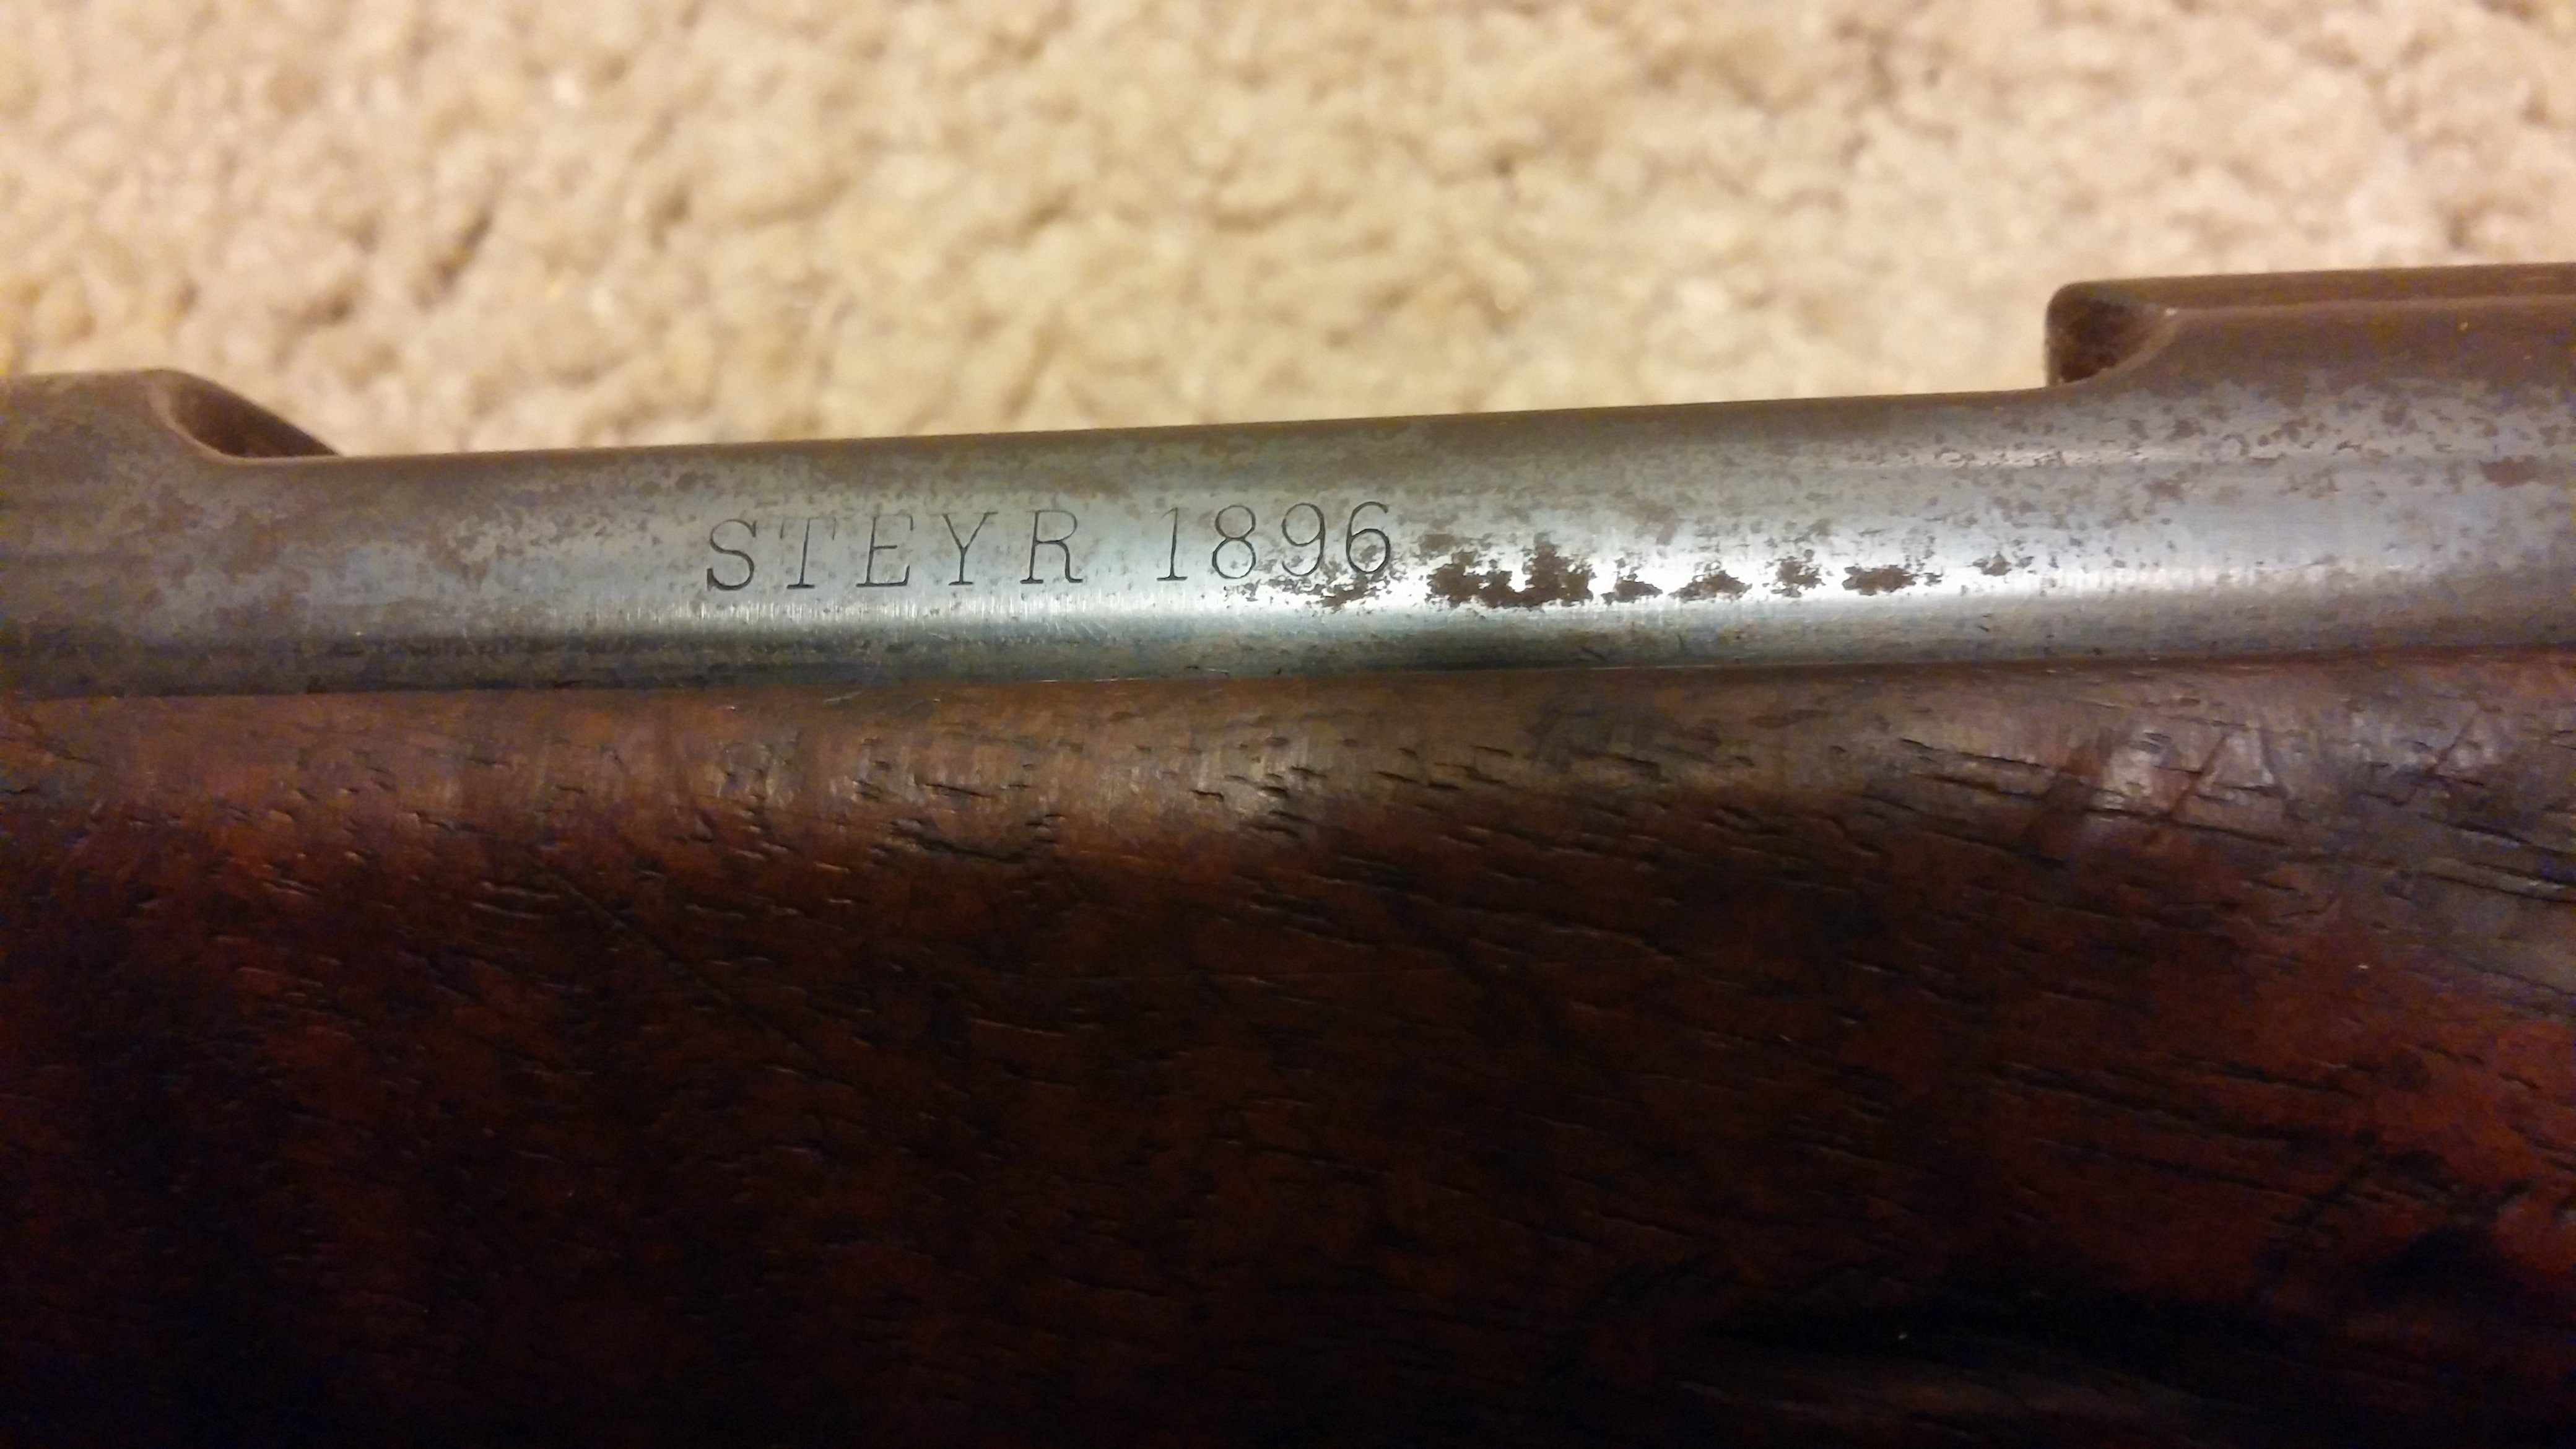 Possible WW1 or 2 Rifle found - price? | The Firearms Forum - The